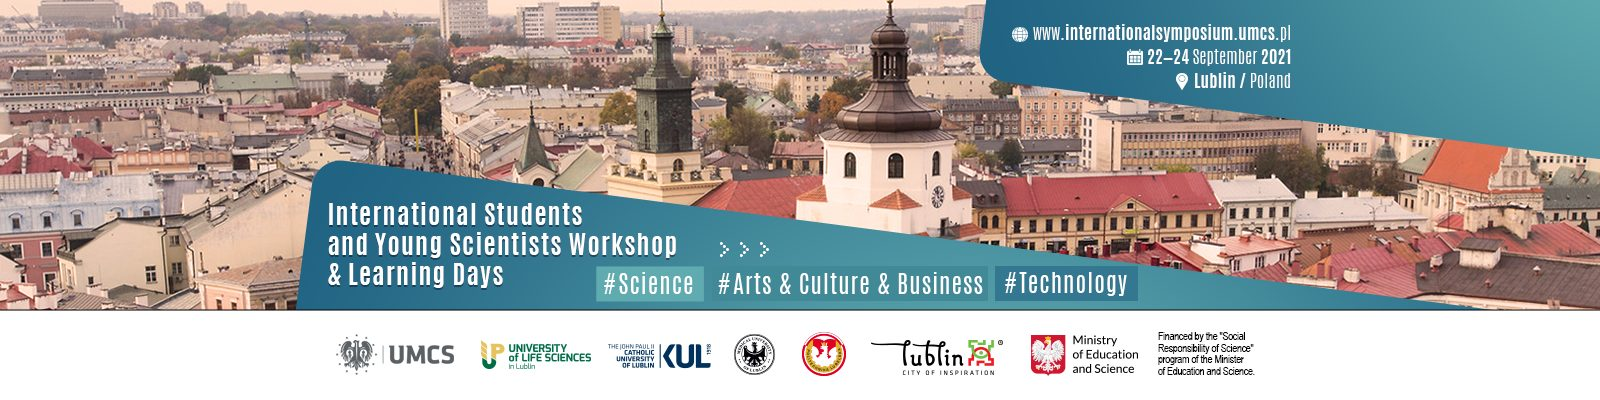 The International Students and Young Scientists Workshop & Learning Days